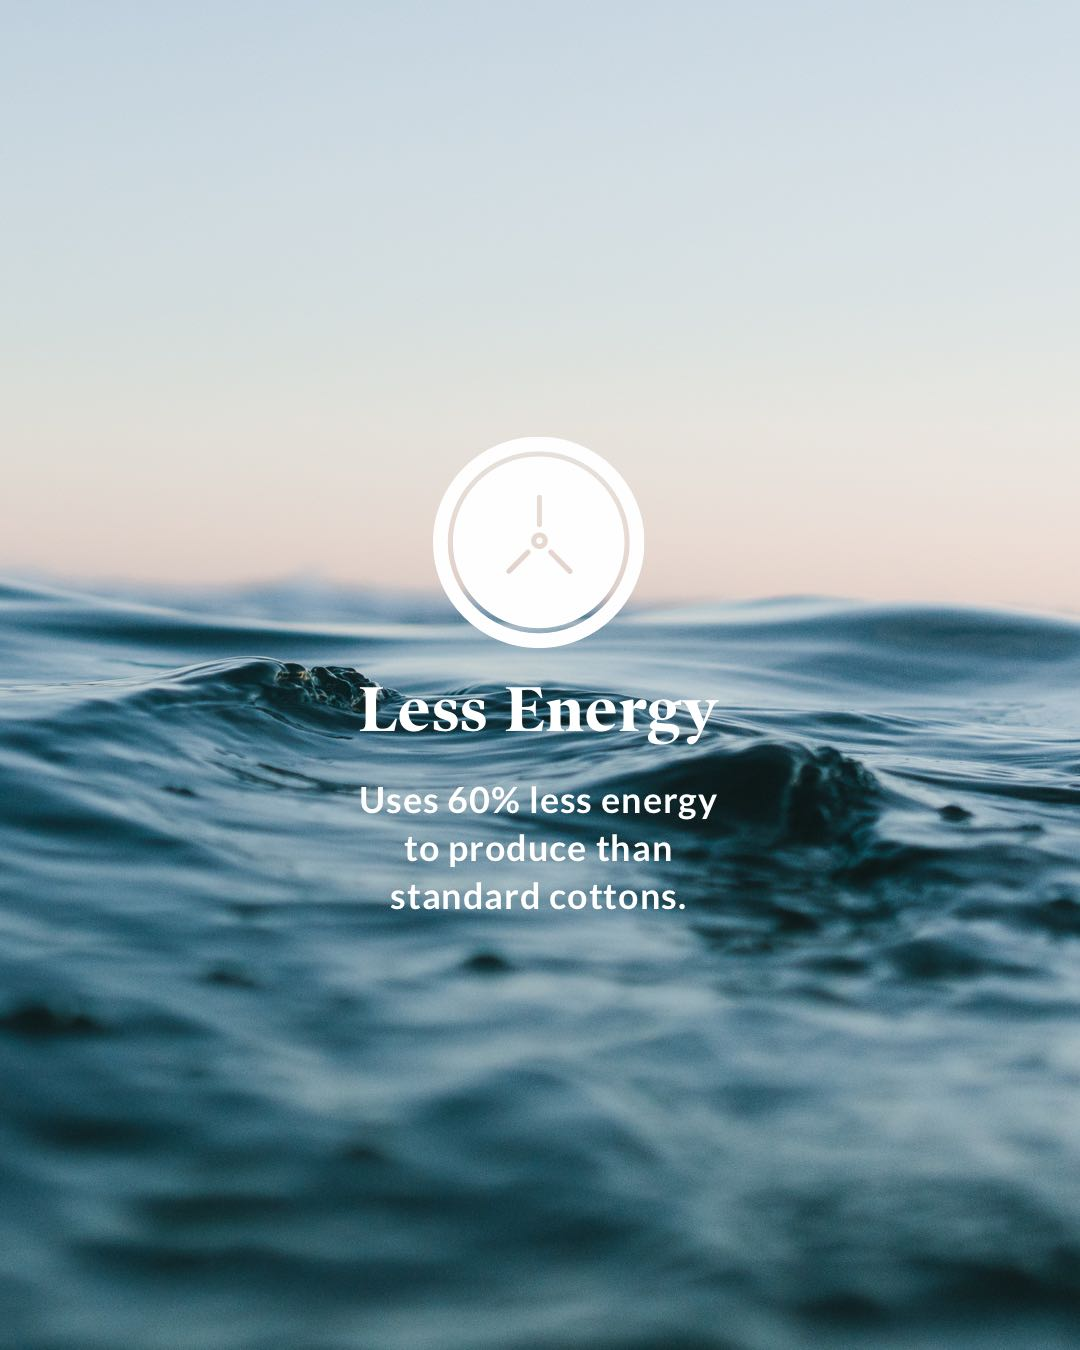 Less Energy - Uses 60% less energy to produce than standard cottons.